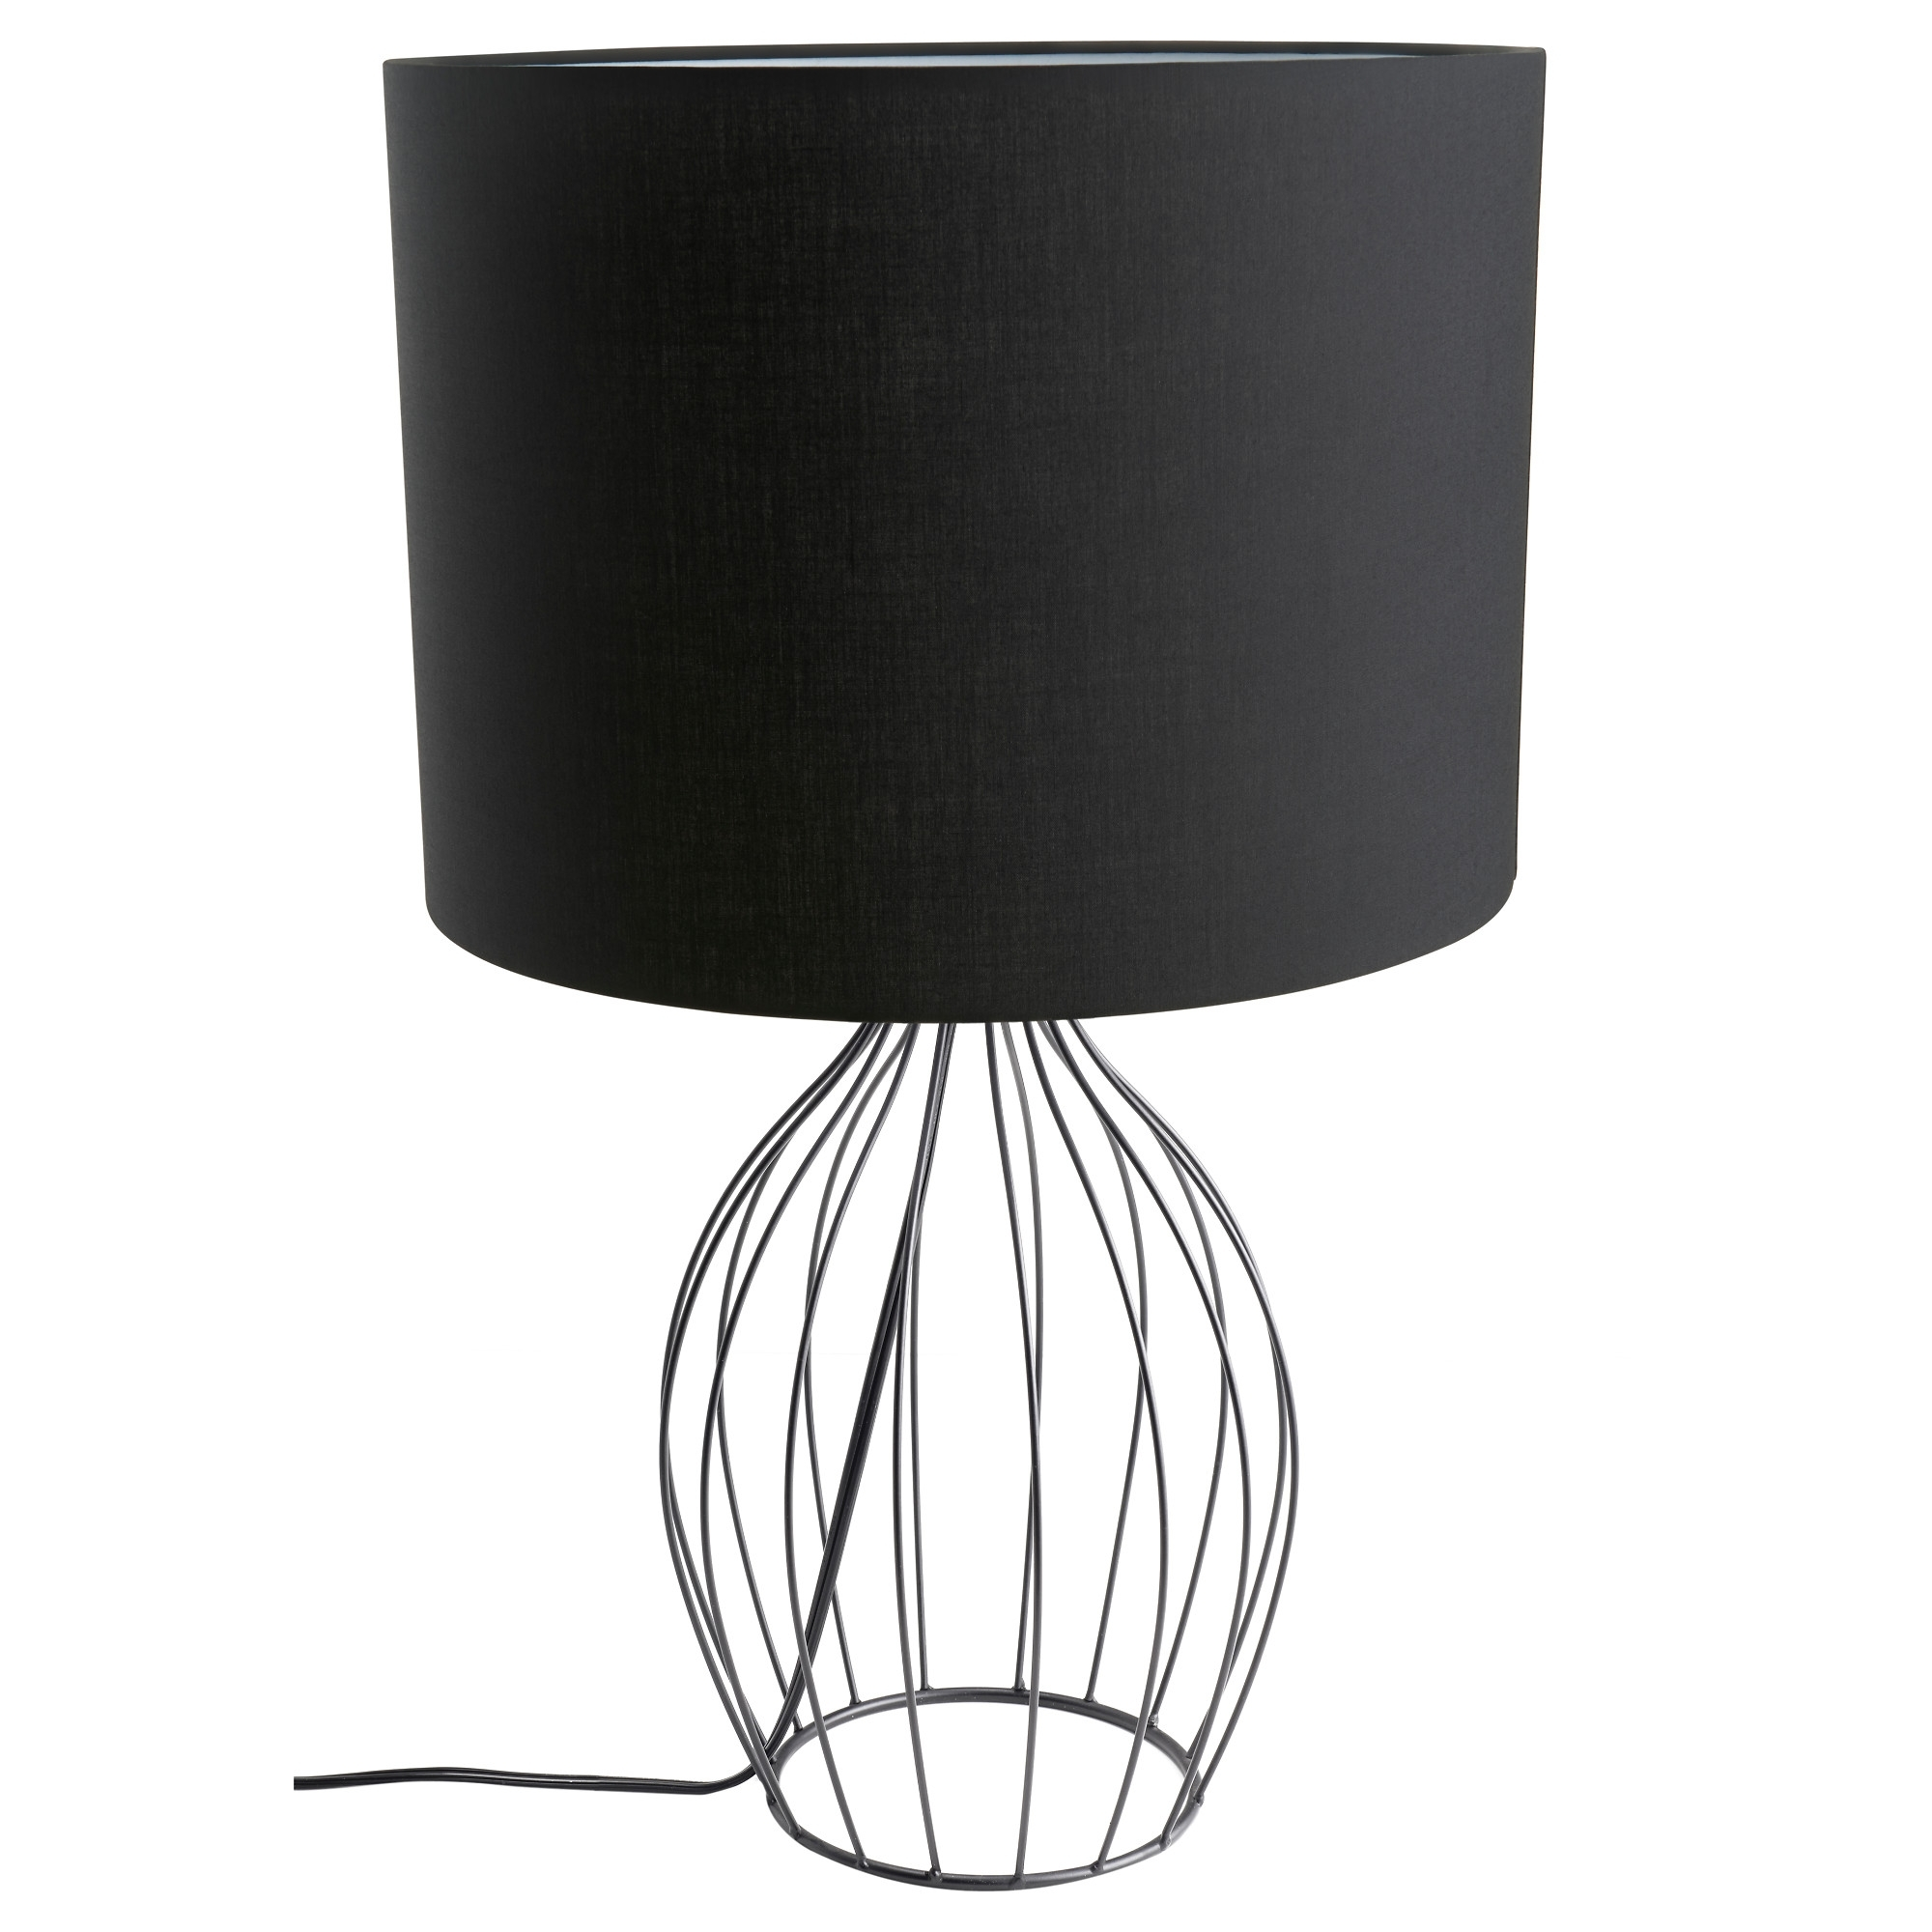 Black Living Room Table Lamps For Well Liked Top 68 Supreme Nightstand Lamps Unique Table Grey Bedside Black (View 3 of 20)